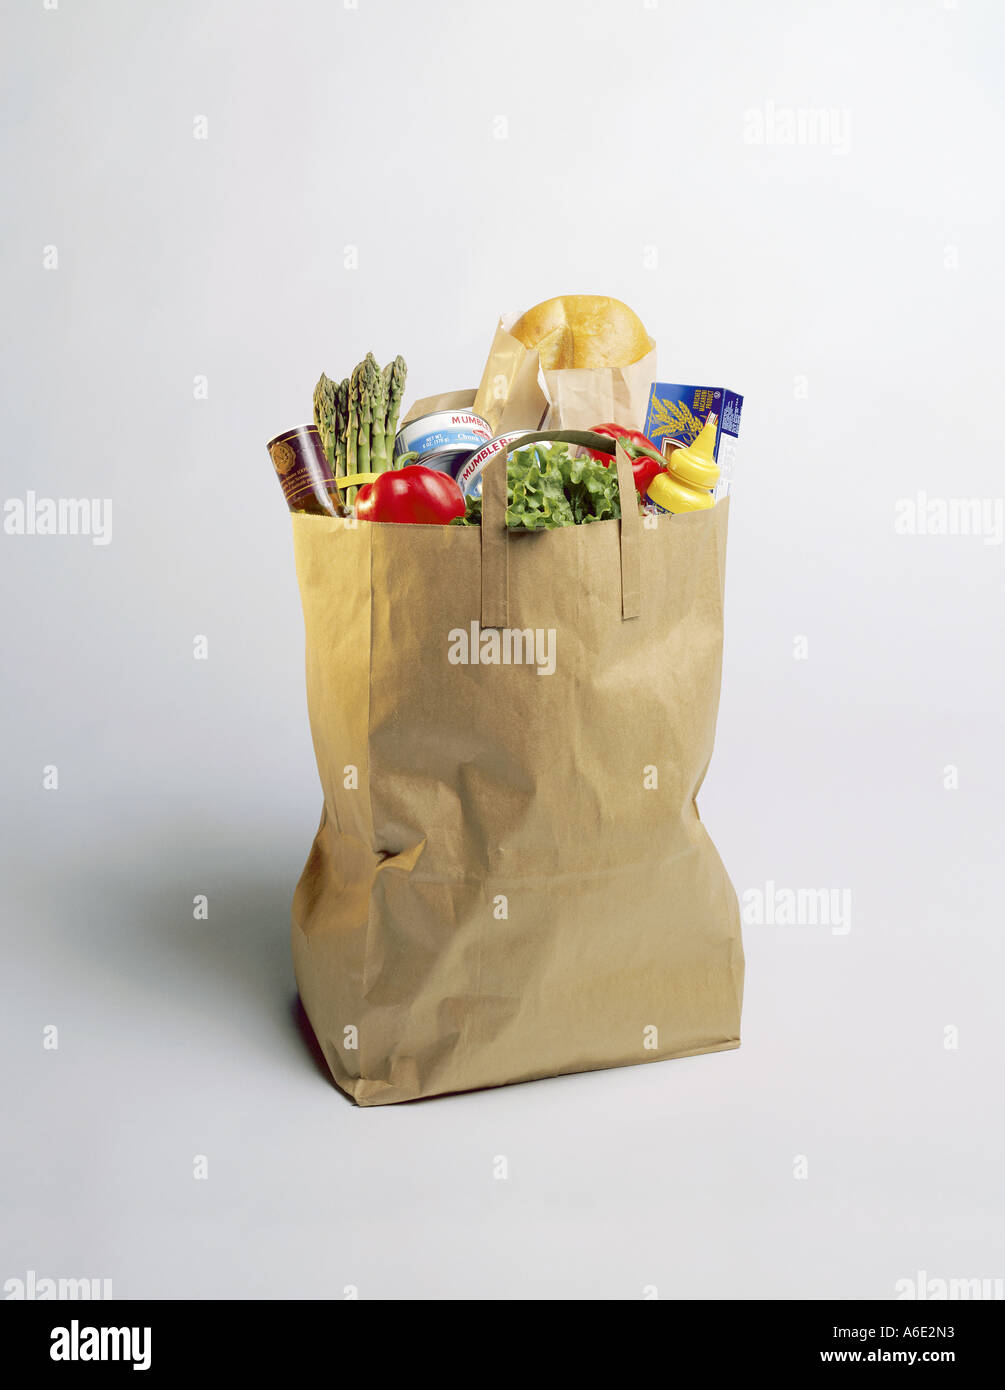 Bag of Groceries sitting on white background Stock Photo